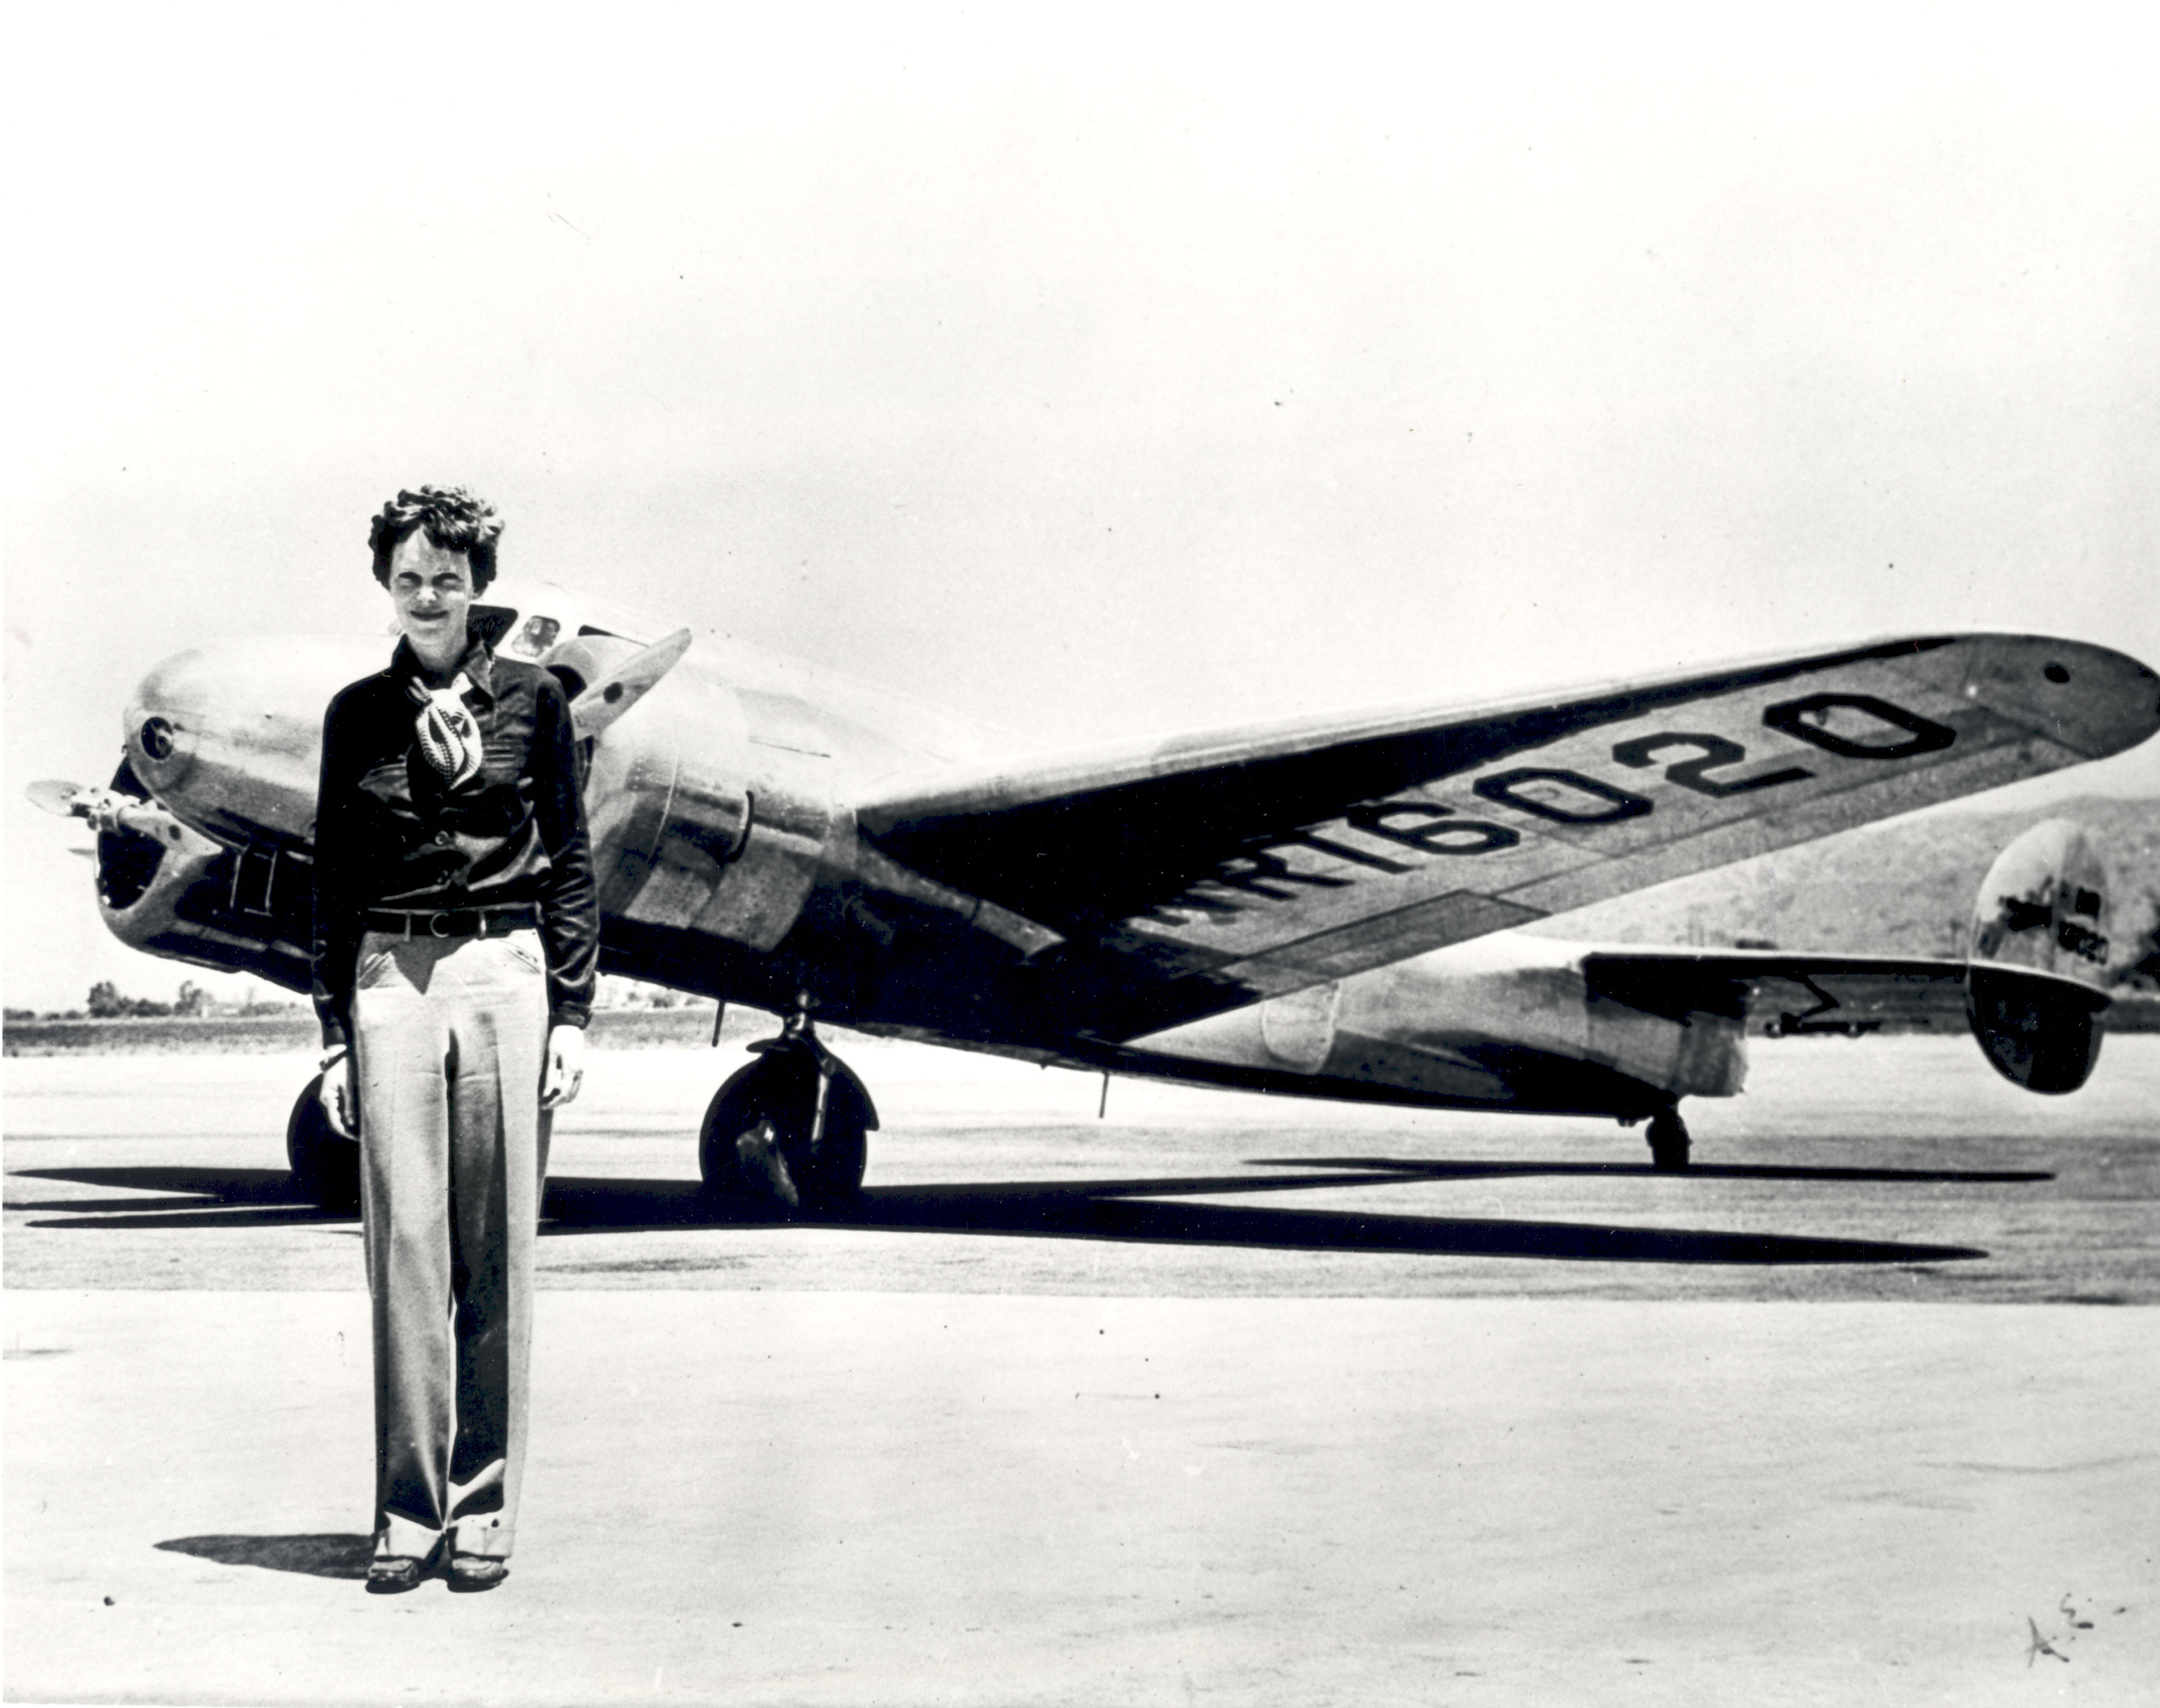 Amelia Earhart standing in front of the Lockheed Electra in which she disappeared in 1937.